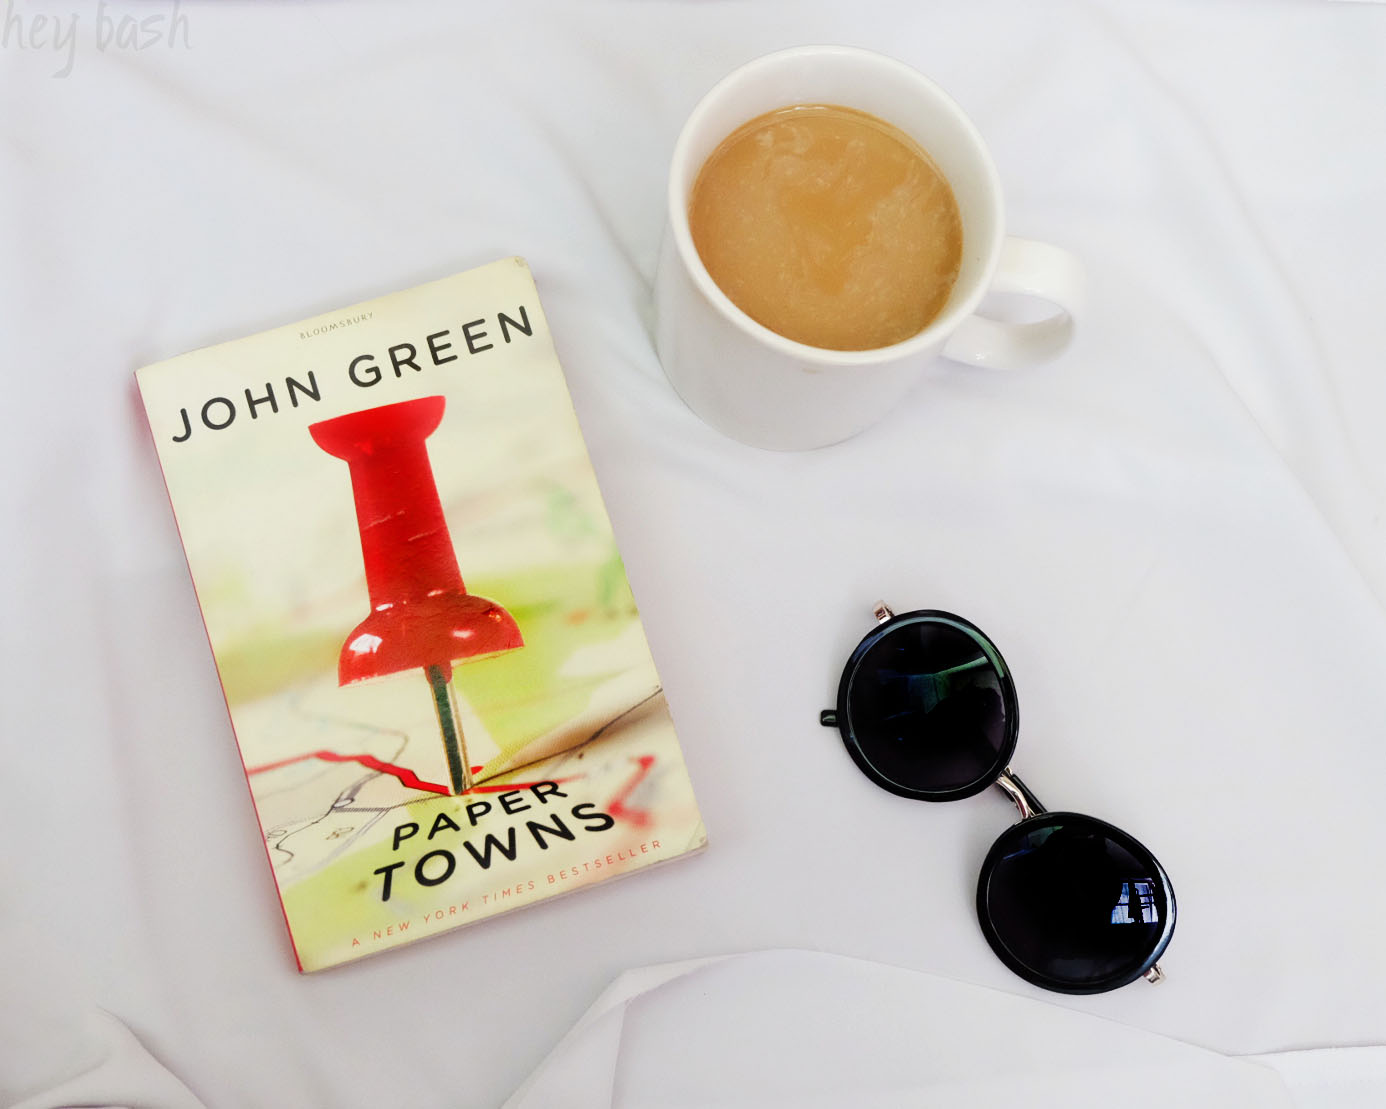 a review of paper towns, manic pixie dream girls and coffee